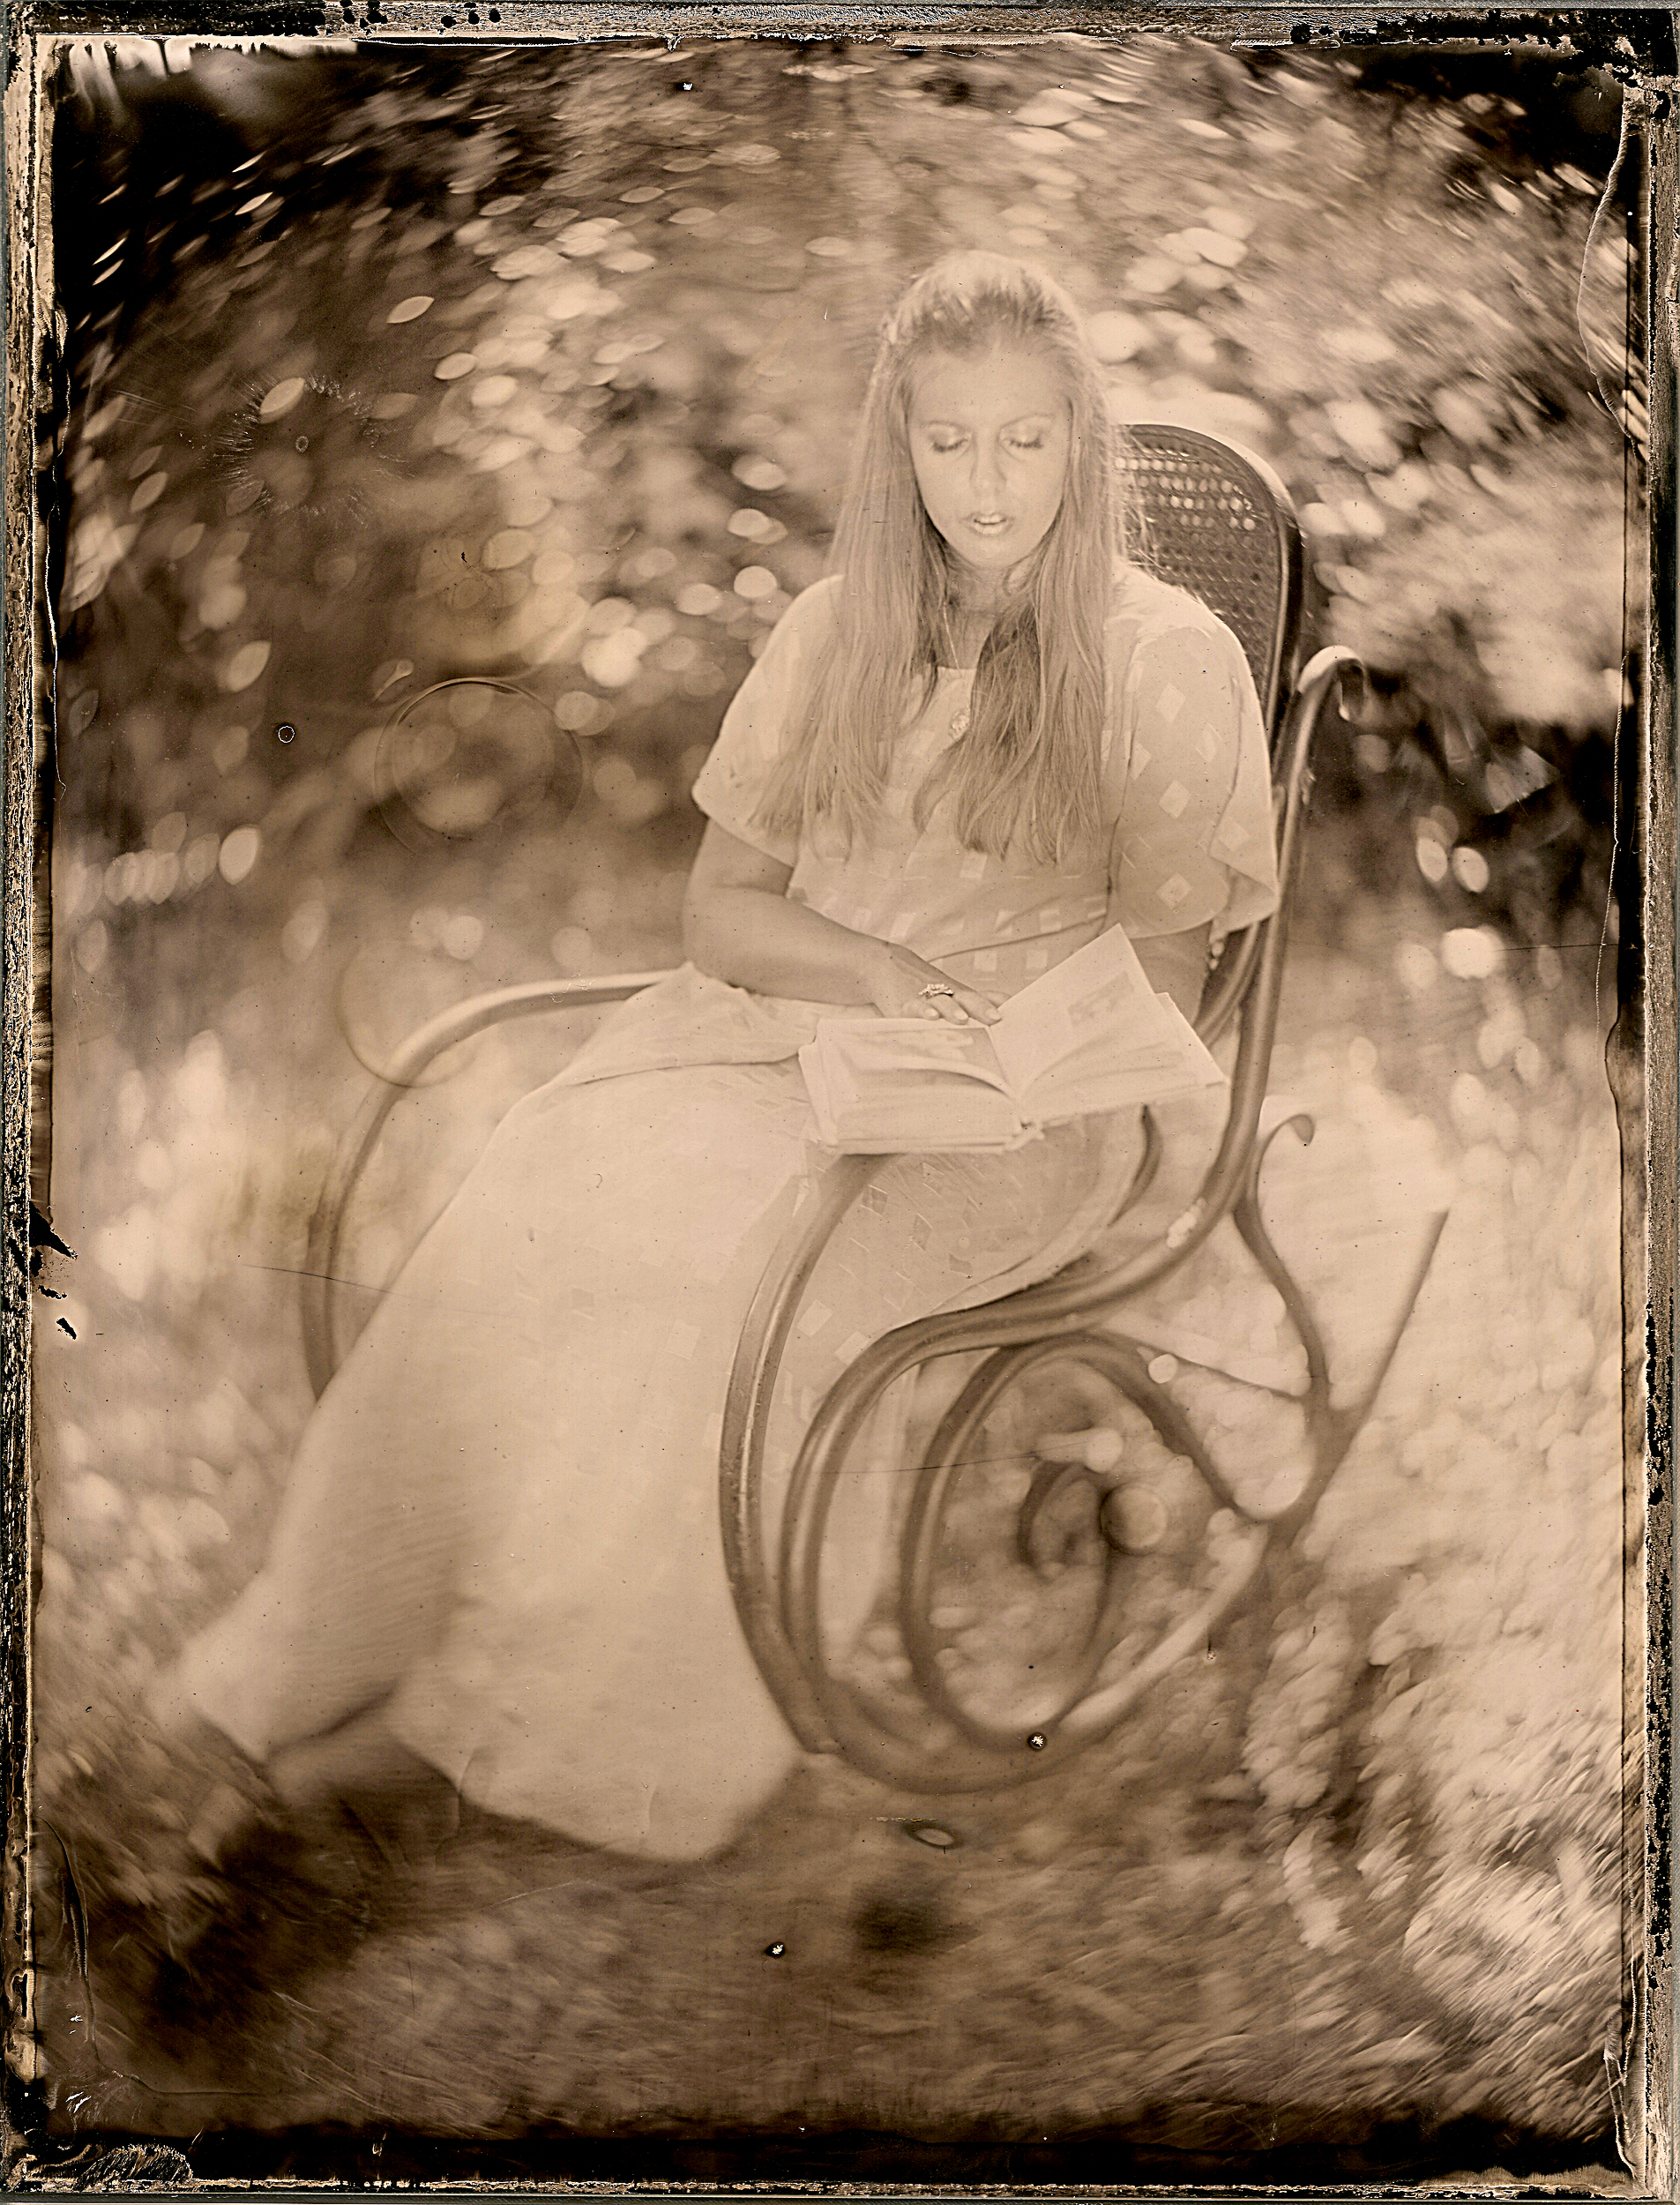 Ambrotype. Portraits.